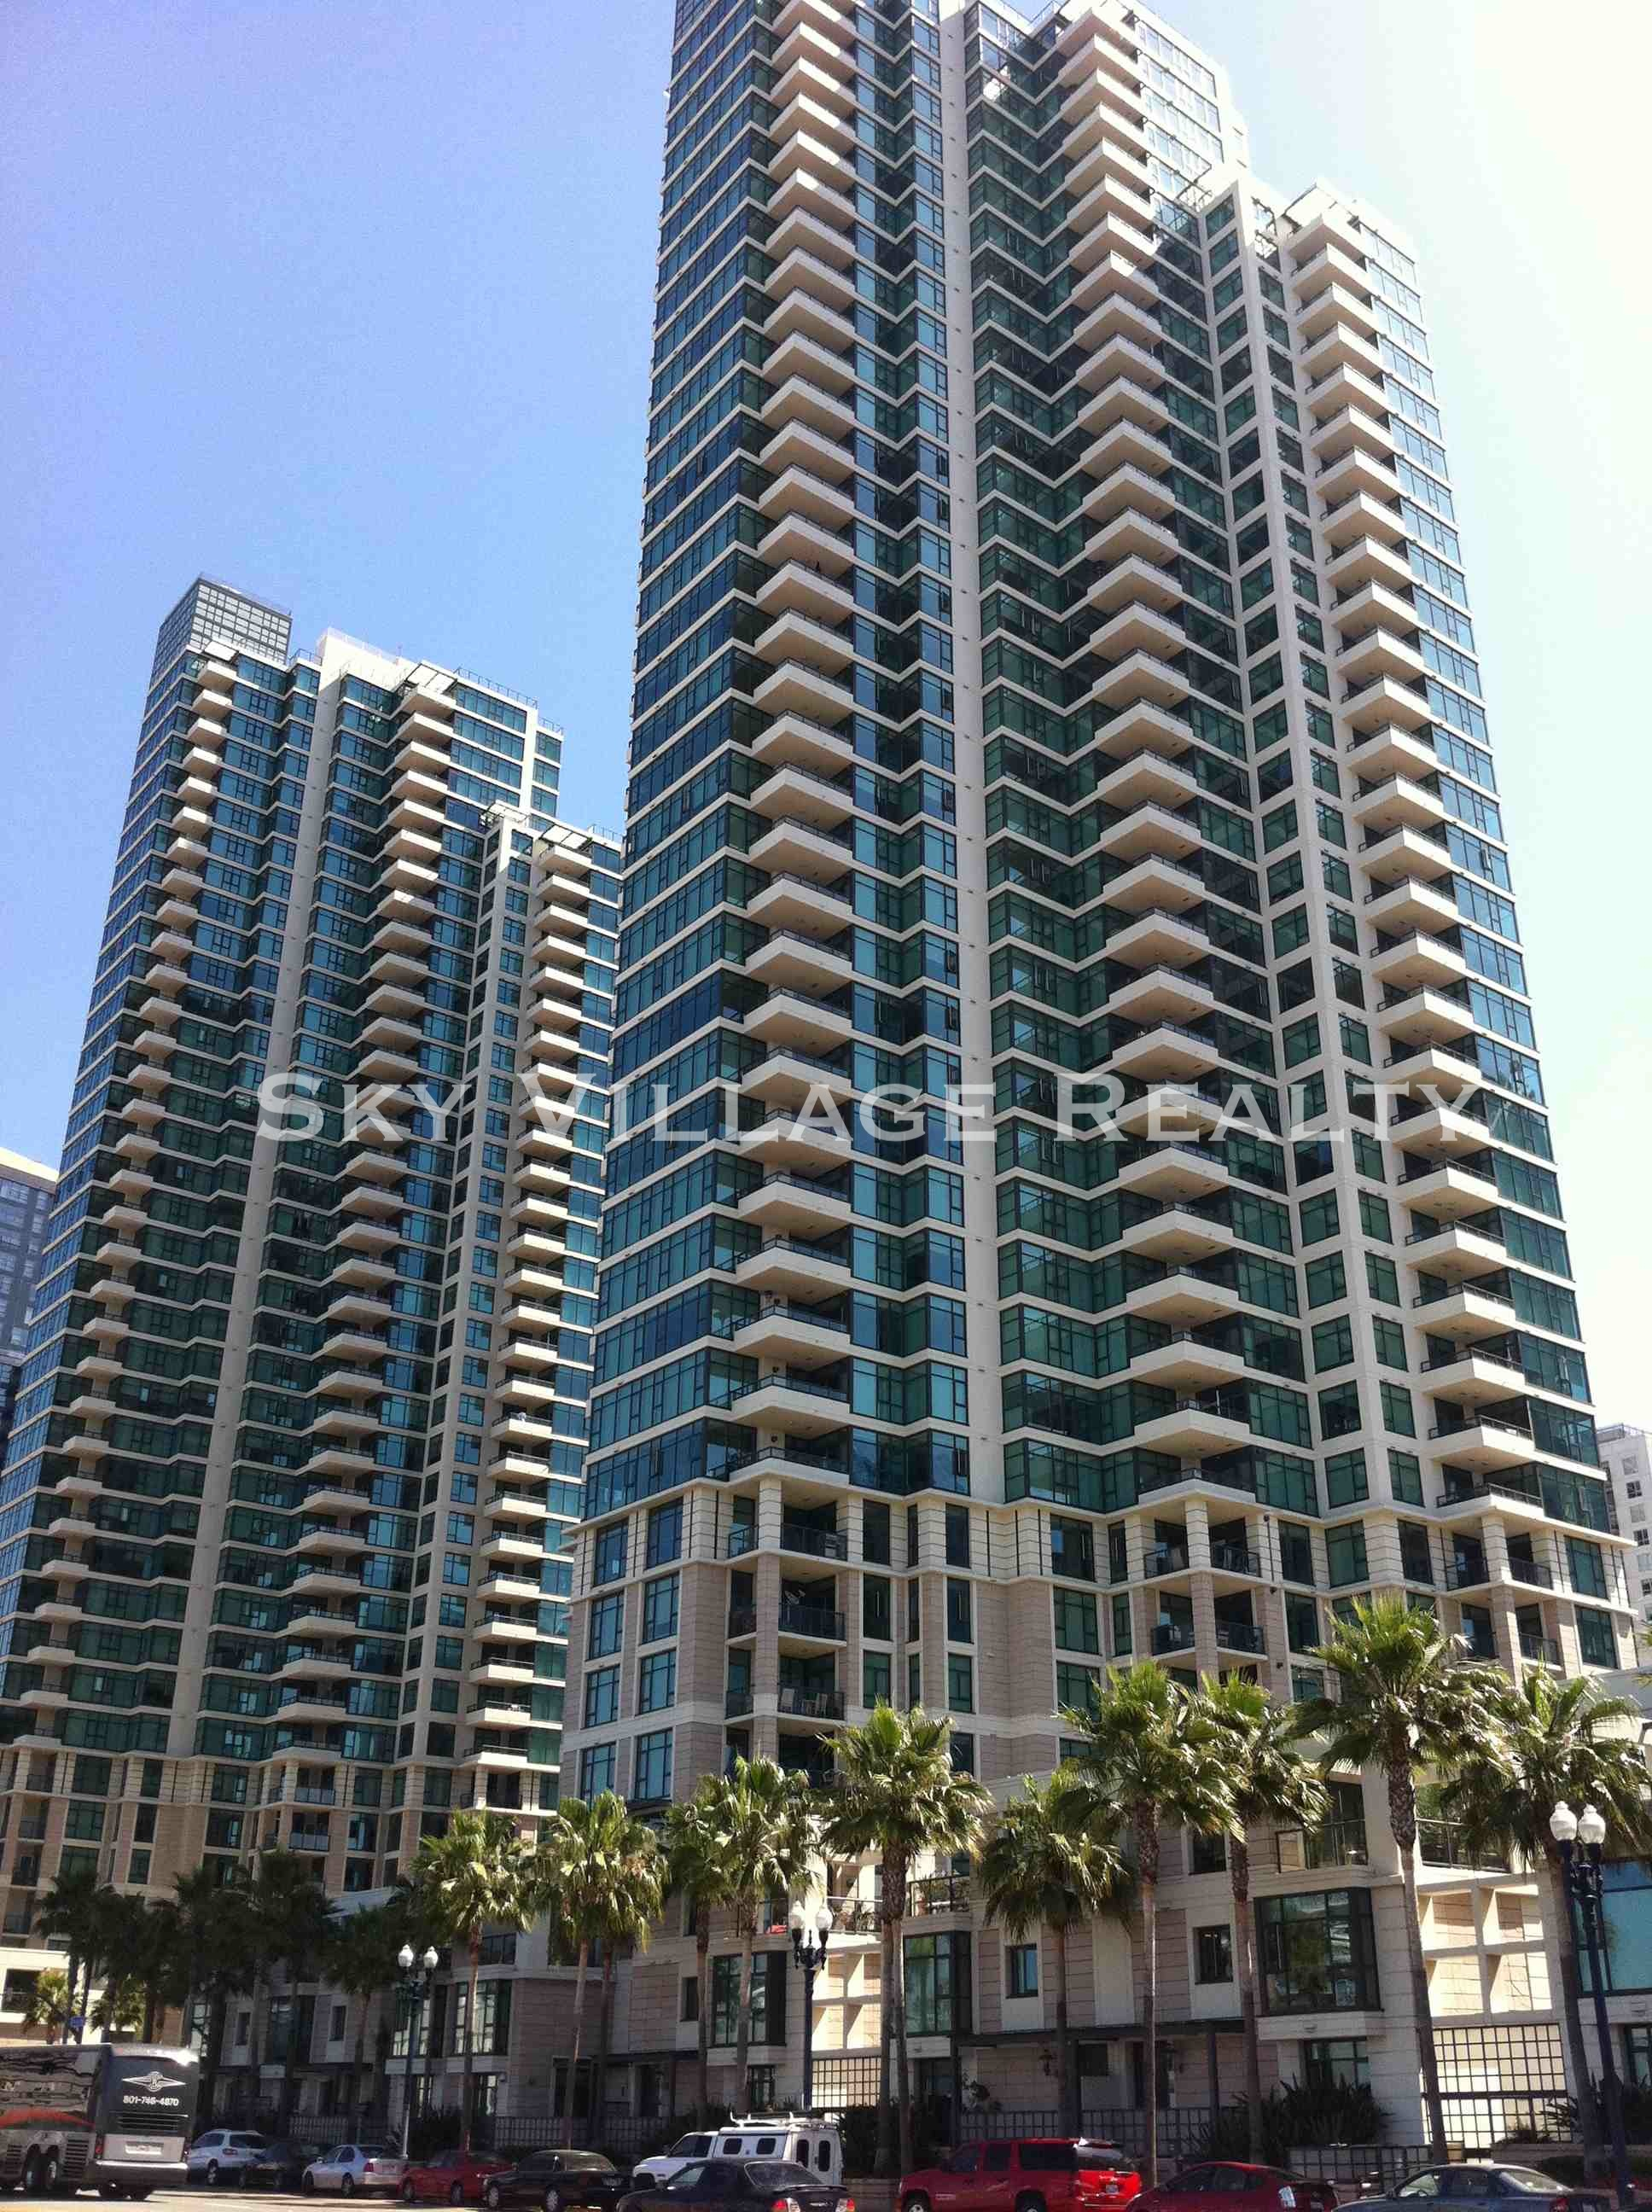 Best luxury high rise condo buildings in downtown san diego - Apartment buildings san diego ...